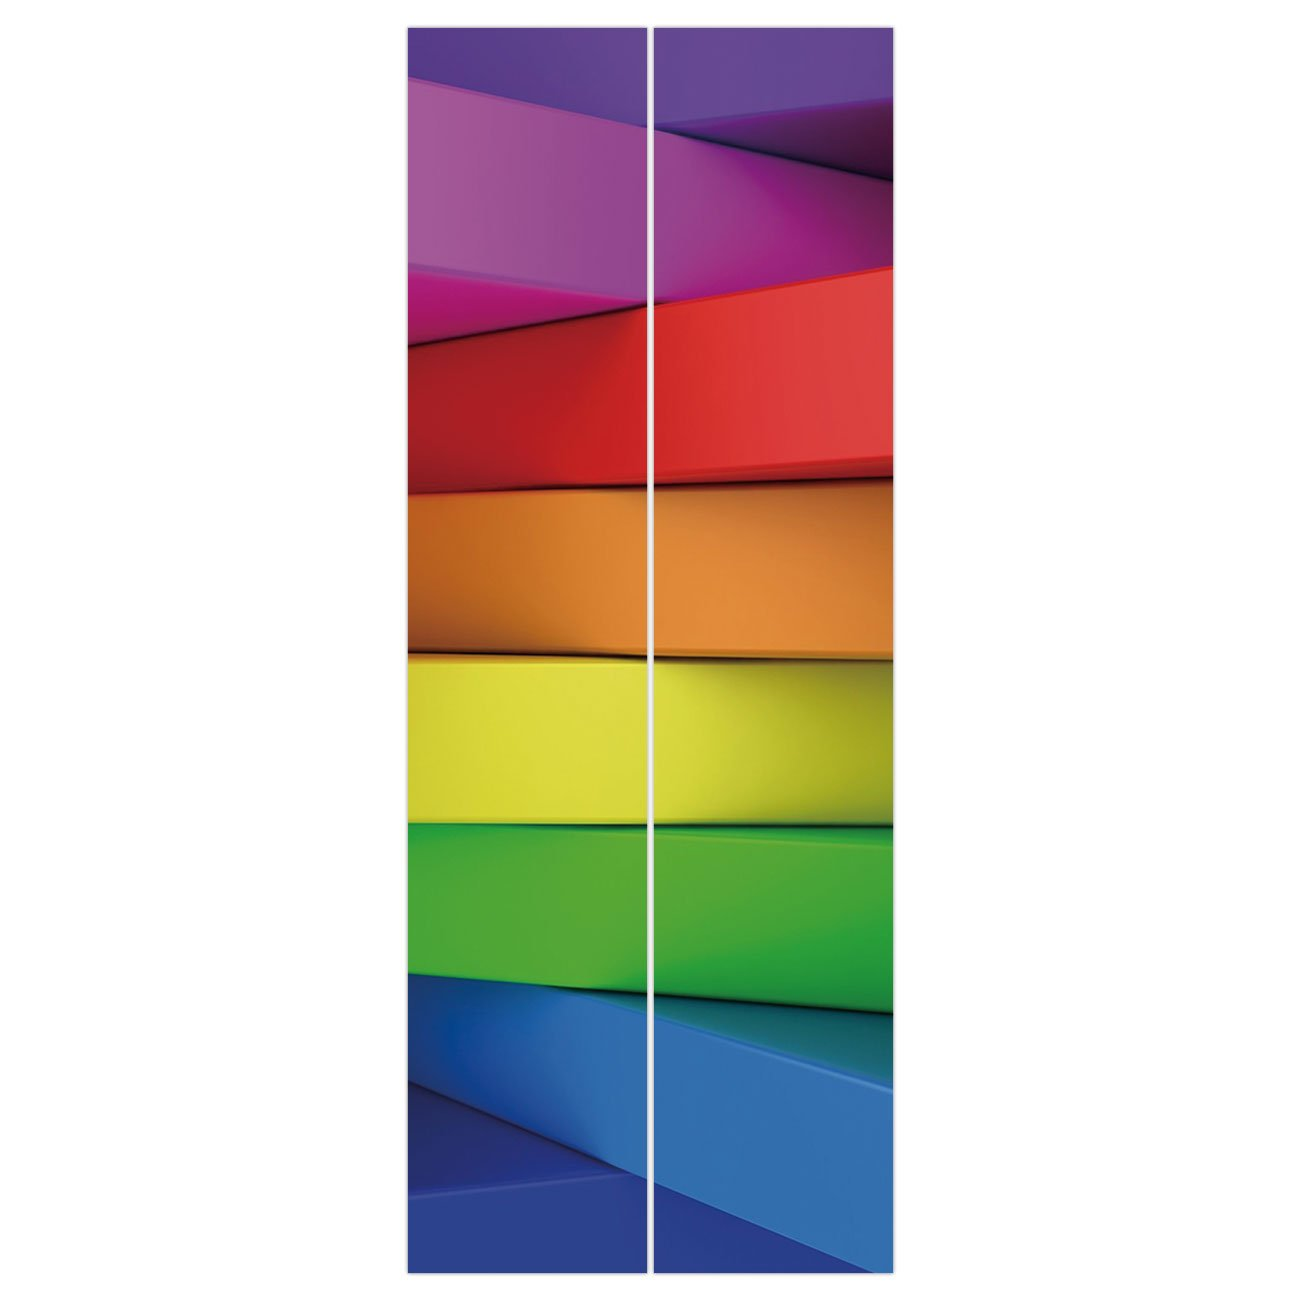 3d Door Wall Mural Wallpaper Stickers [ Rainbow,3D Stacked Panels with Colors of a Rainbow Computer Generated Artwork Vibrant Tones,Multicolor ] Mural Door Wall Stickers Wallpaper Mural DIY Home Decor